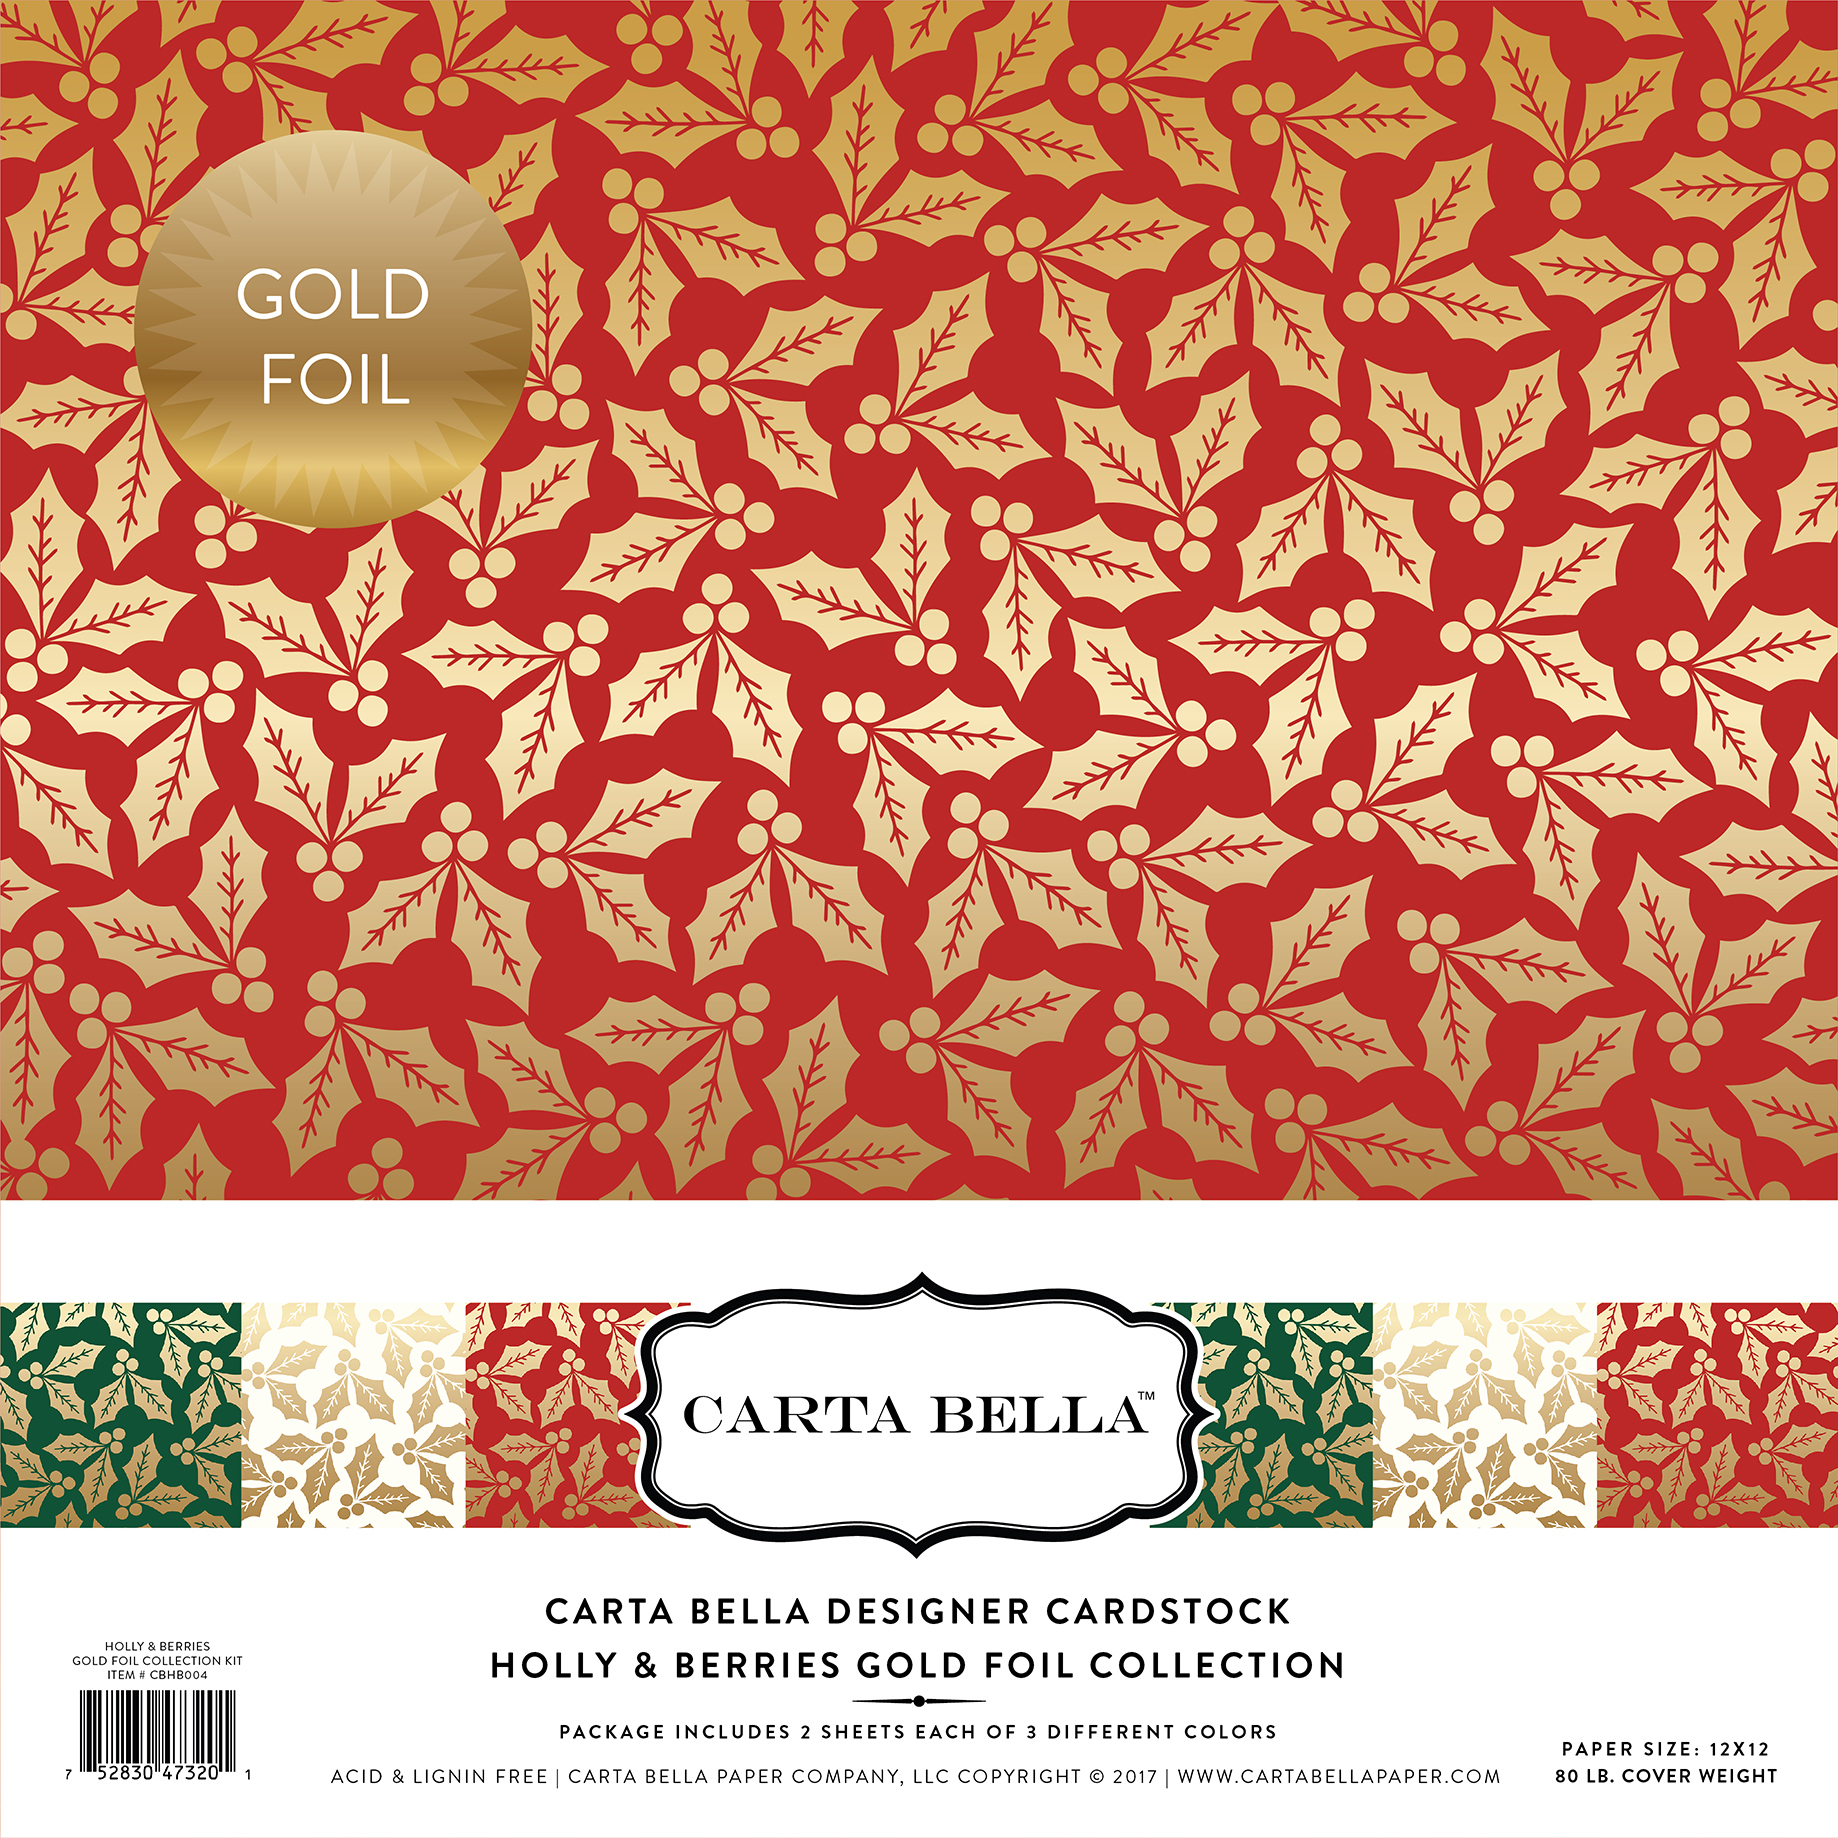 Holly & Berries Gold Foil